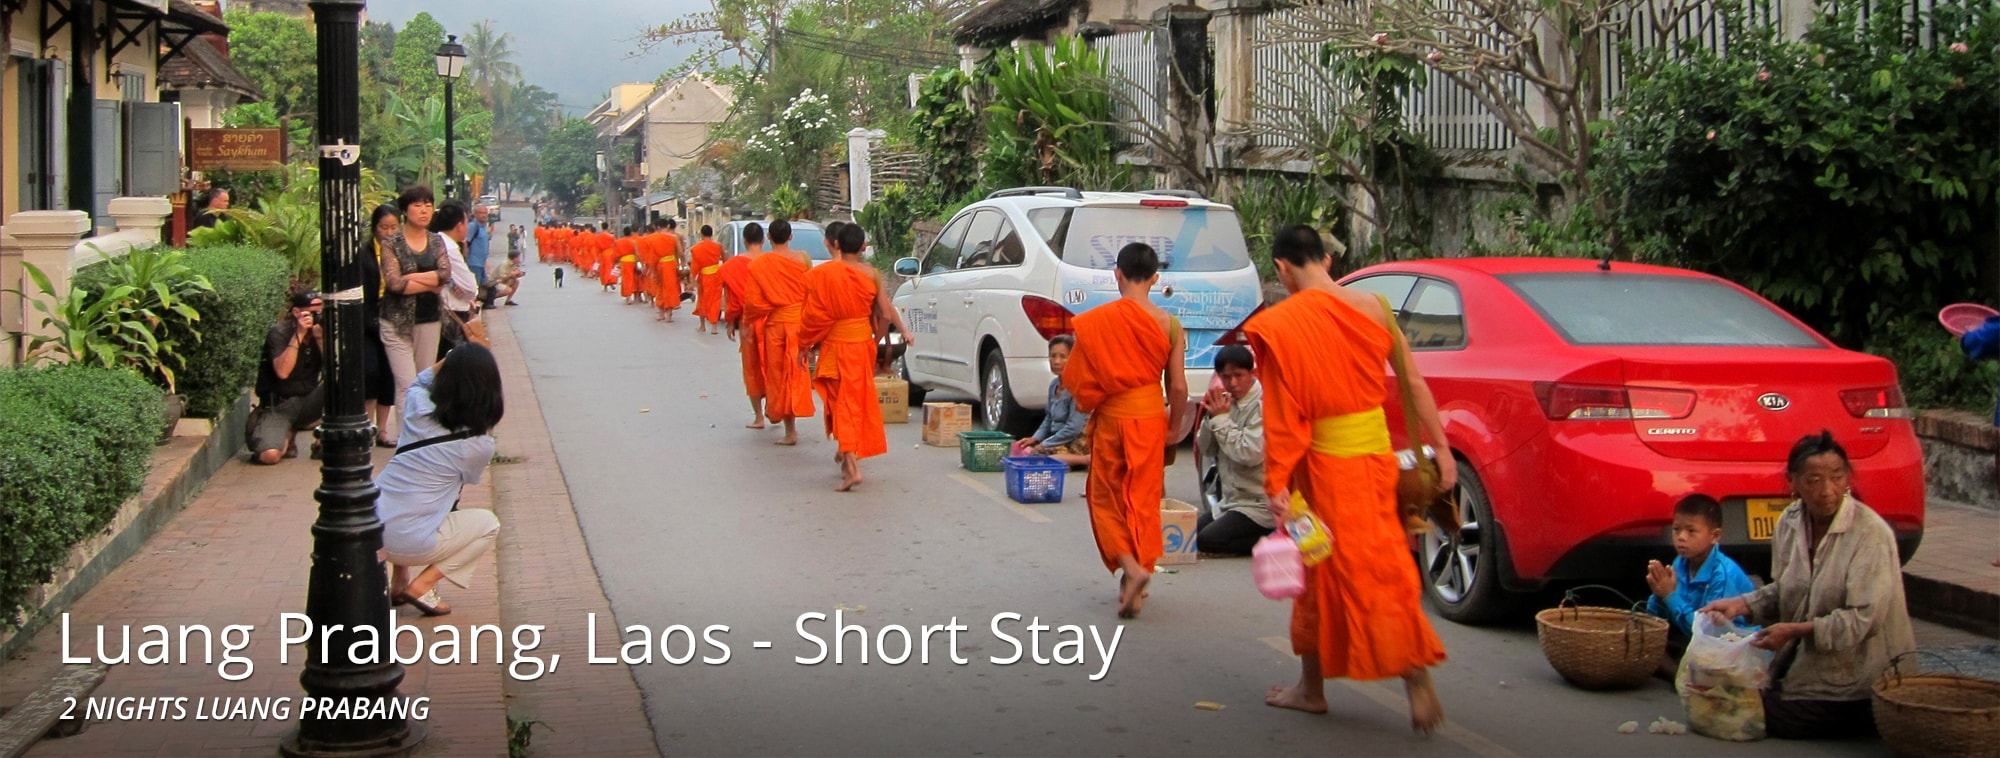 Luang Prabang - Laos Short Stay Top Banner